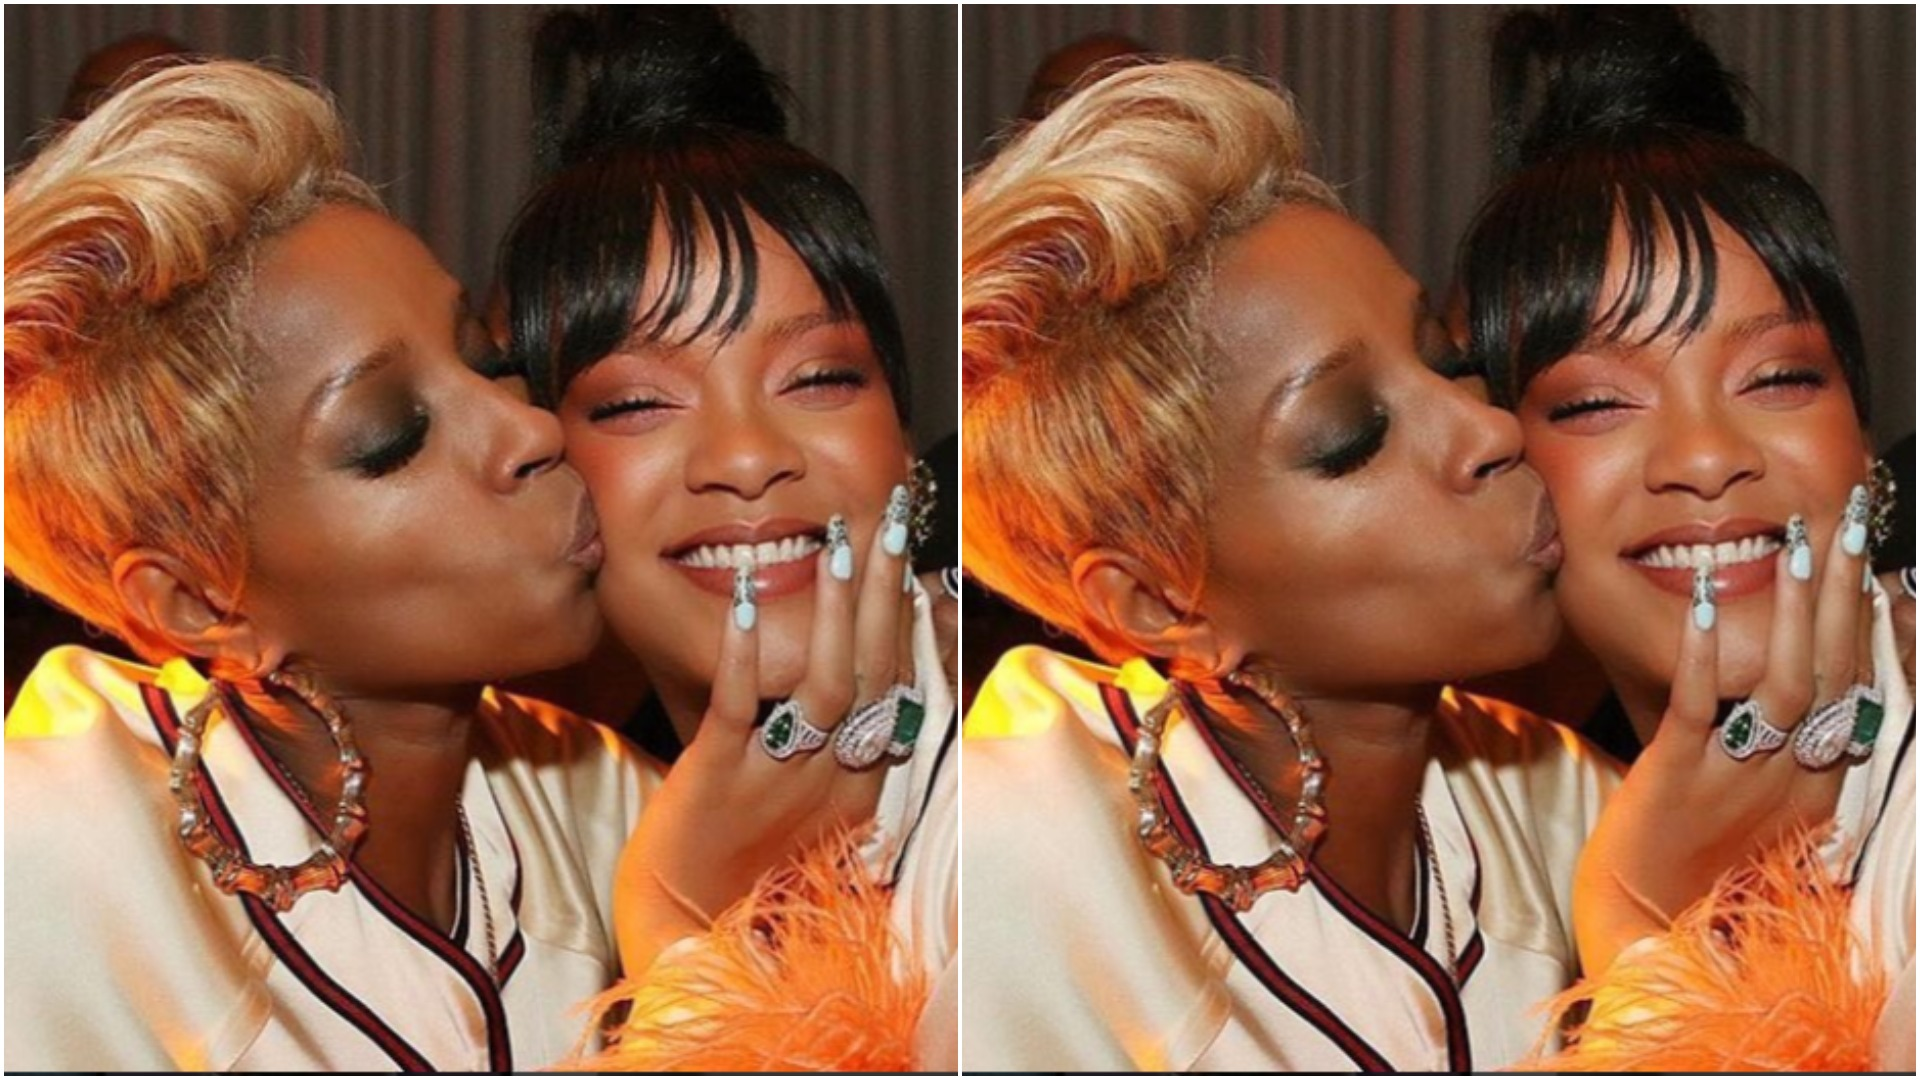 Mary J. Blige giving Rihanna a kiss is cuteness overload